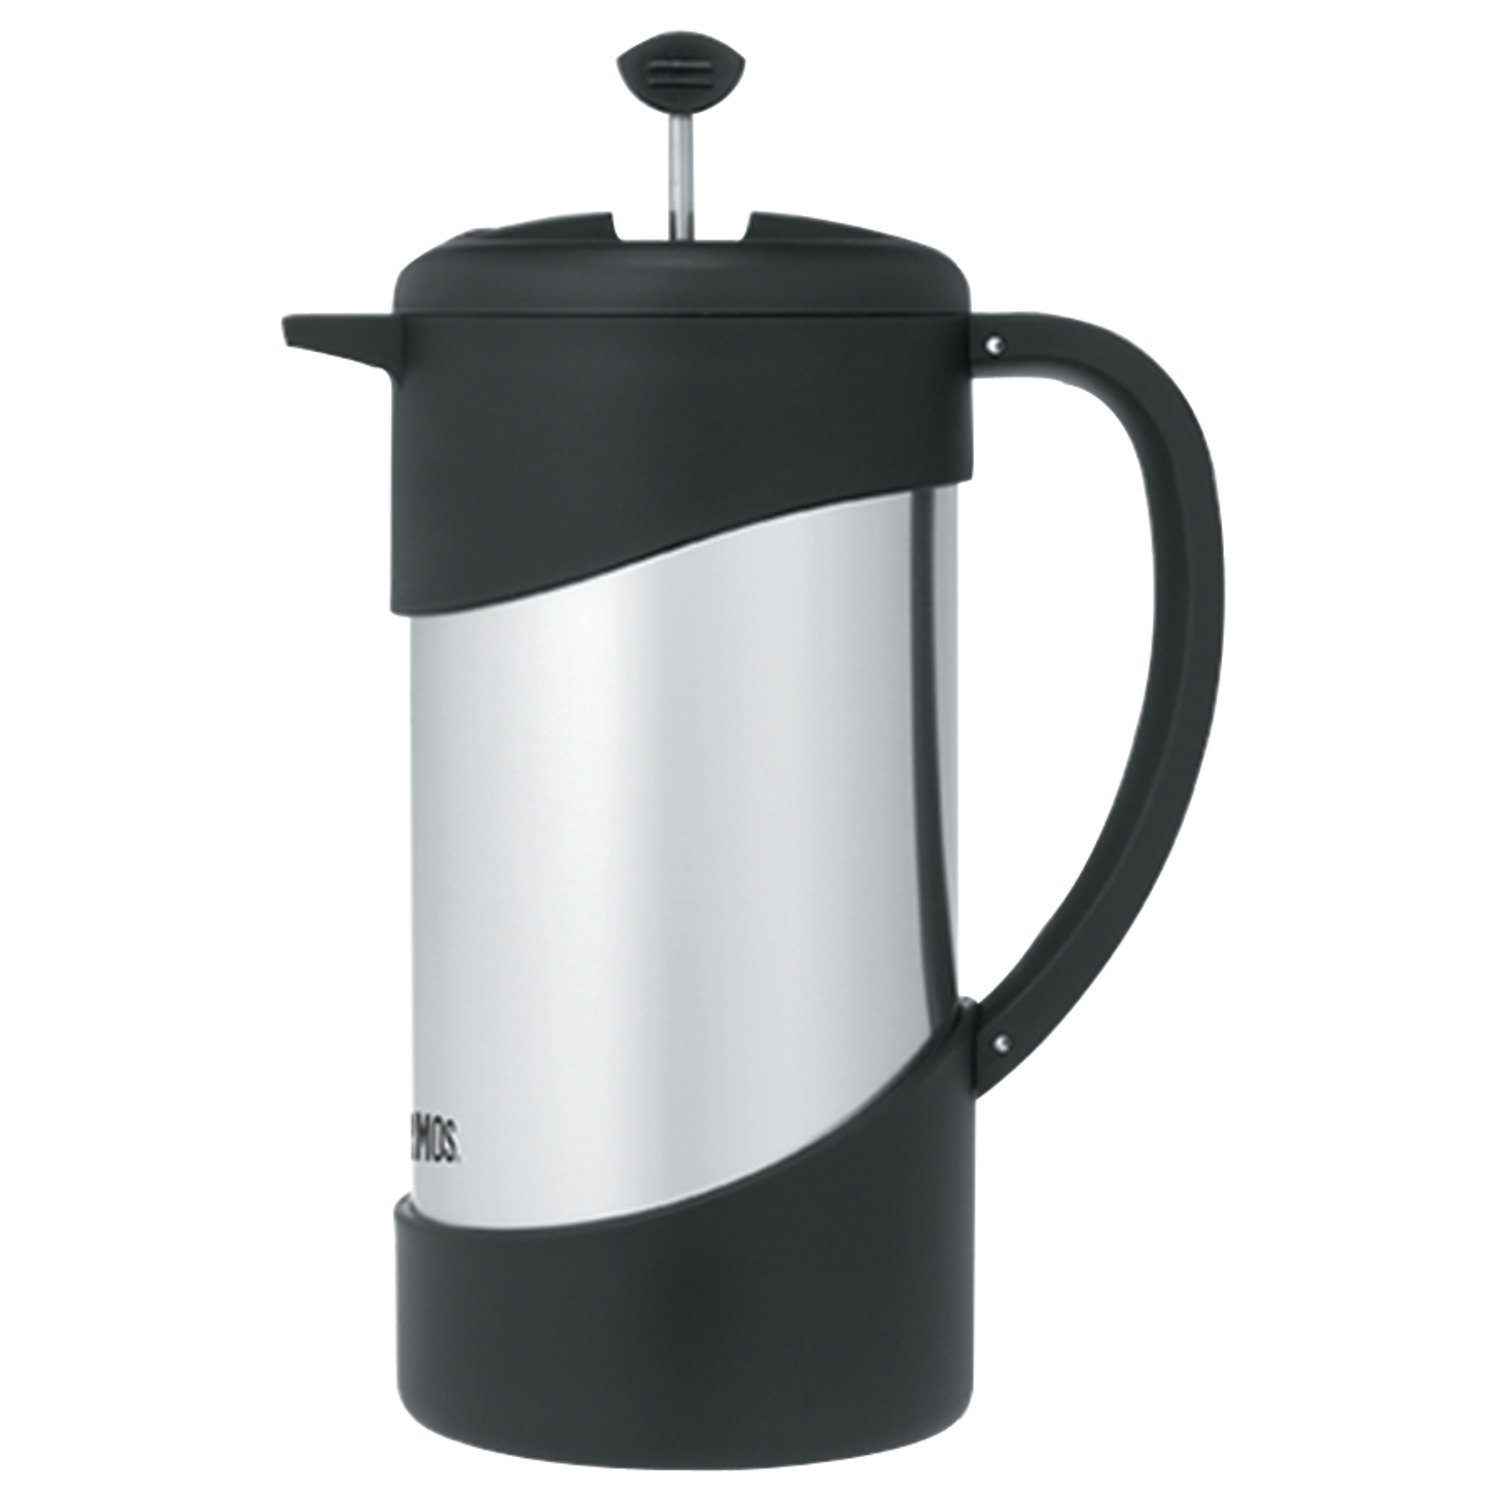 thermos, french press, coffee maker, road trip, camping